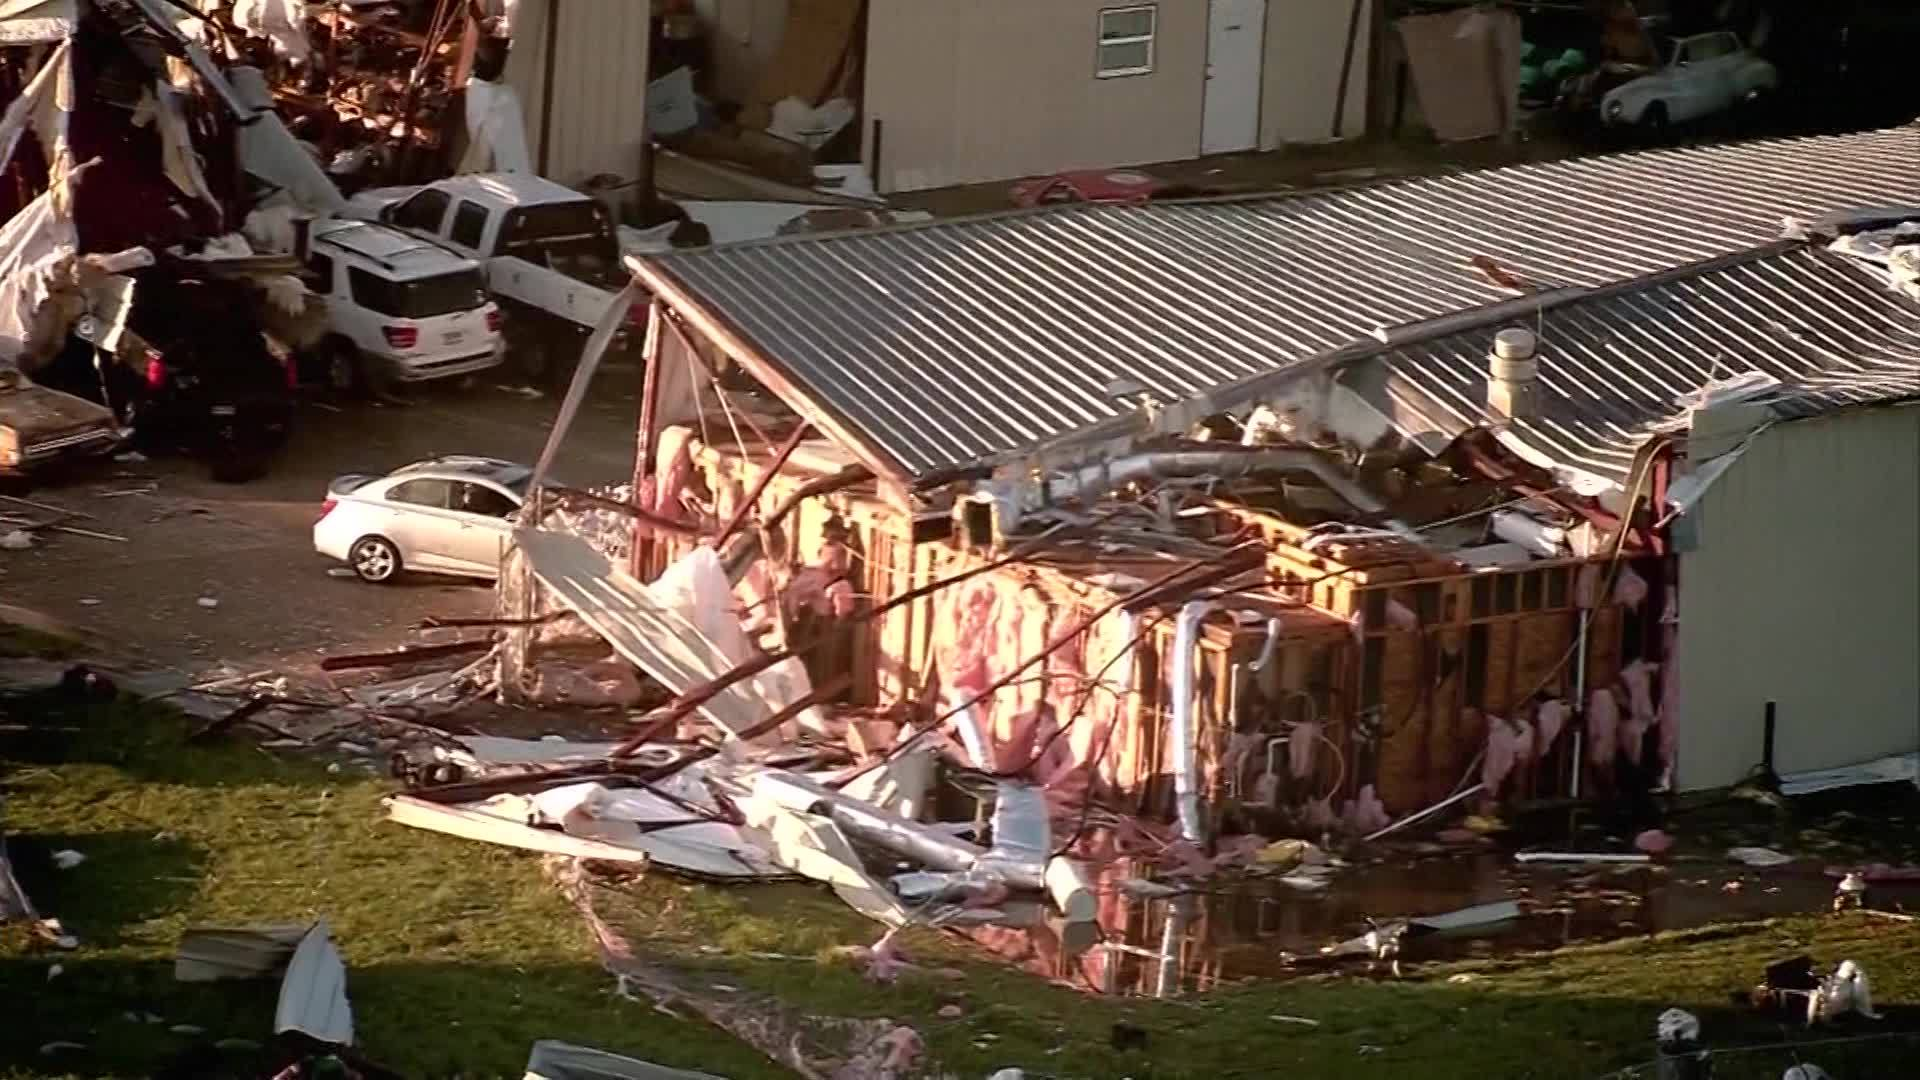 Severe weather damage in Bryan Texas